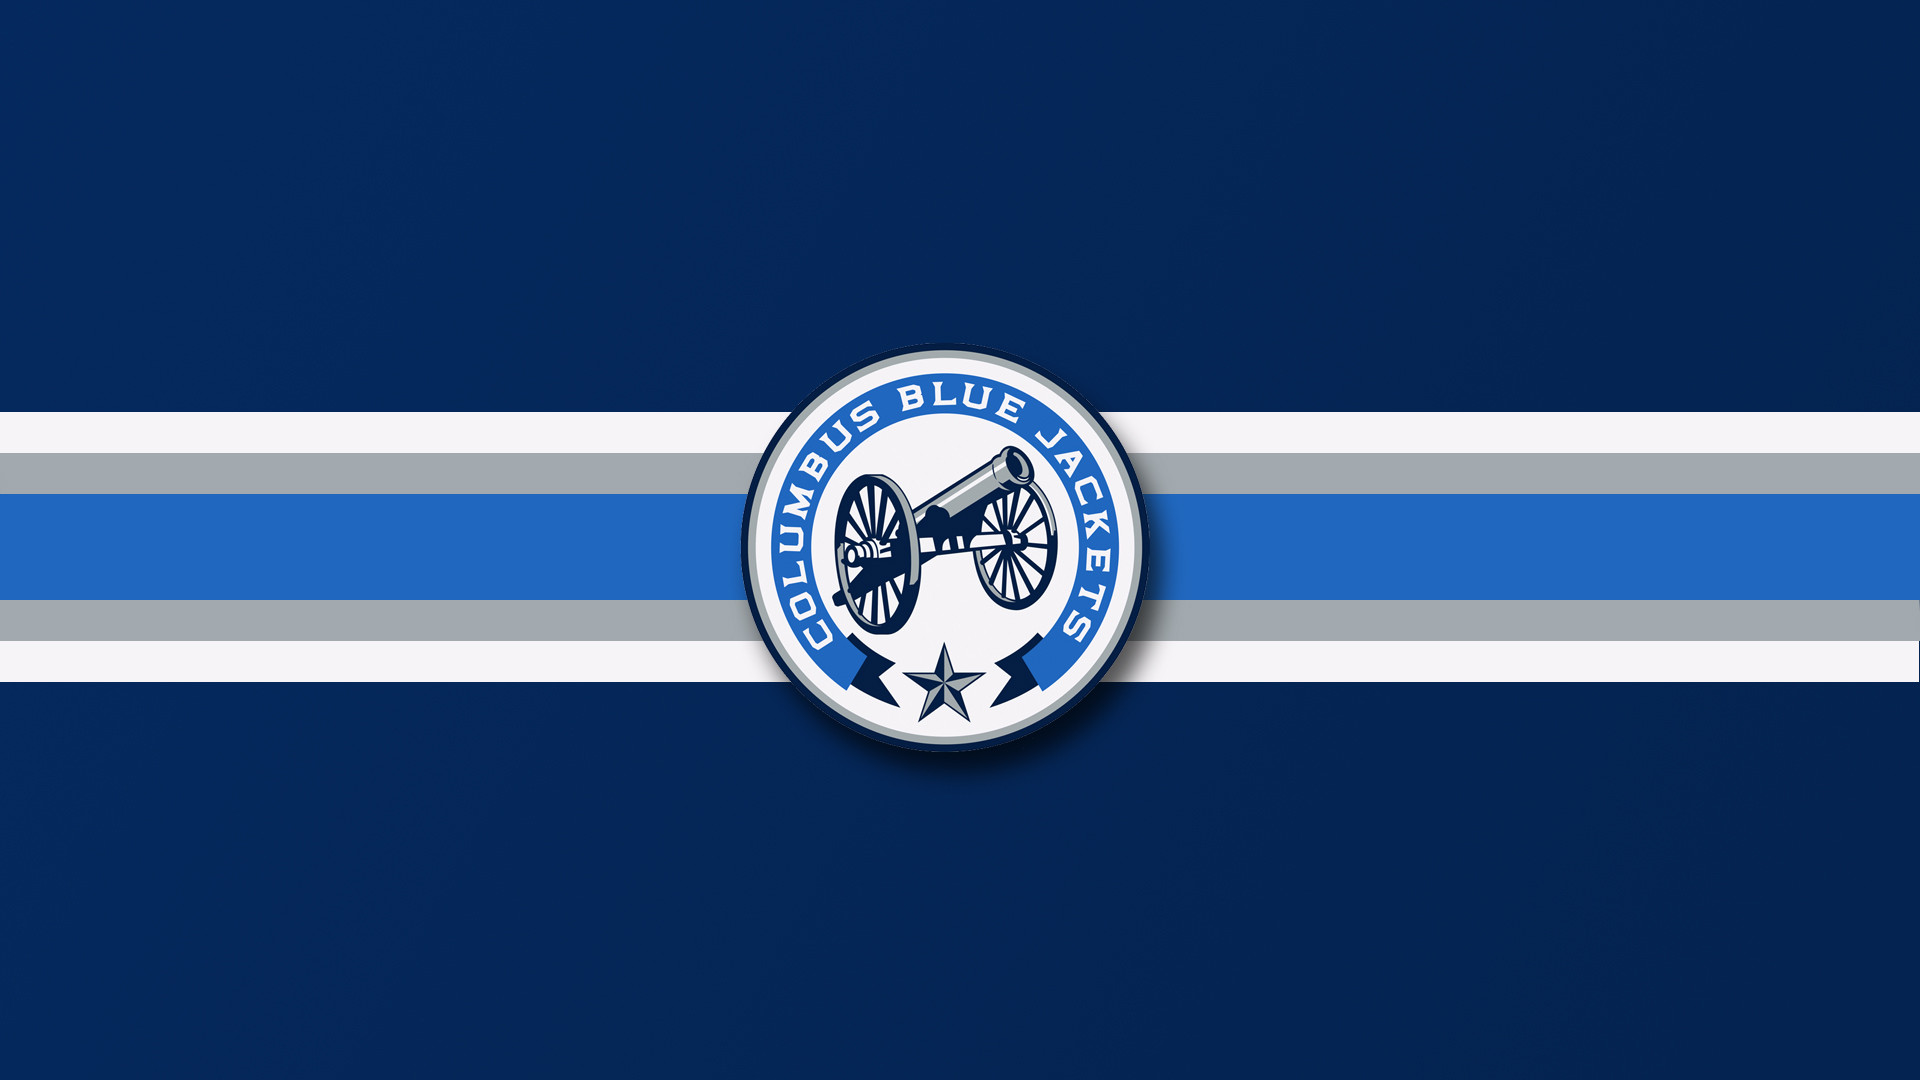 Columbus Blue Jackets Backgrounds on Wallpapers Vista